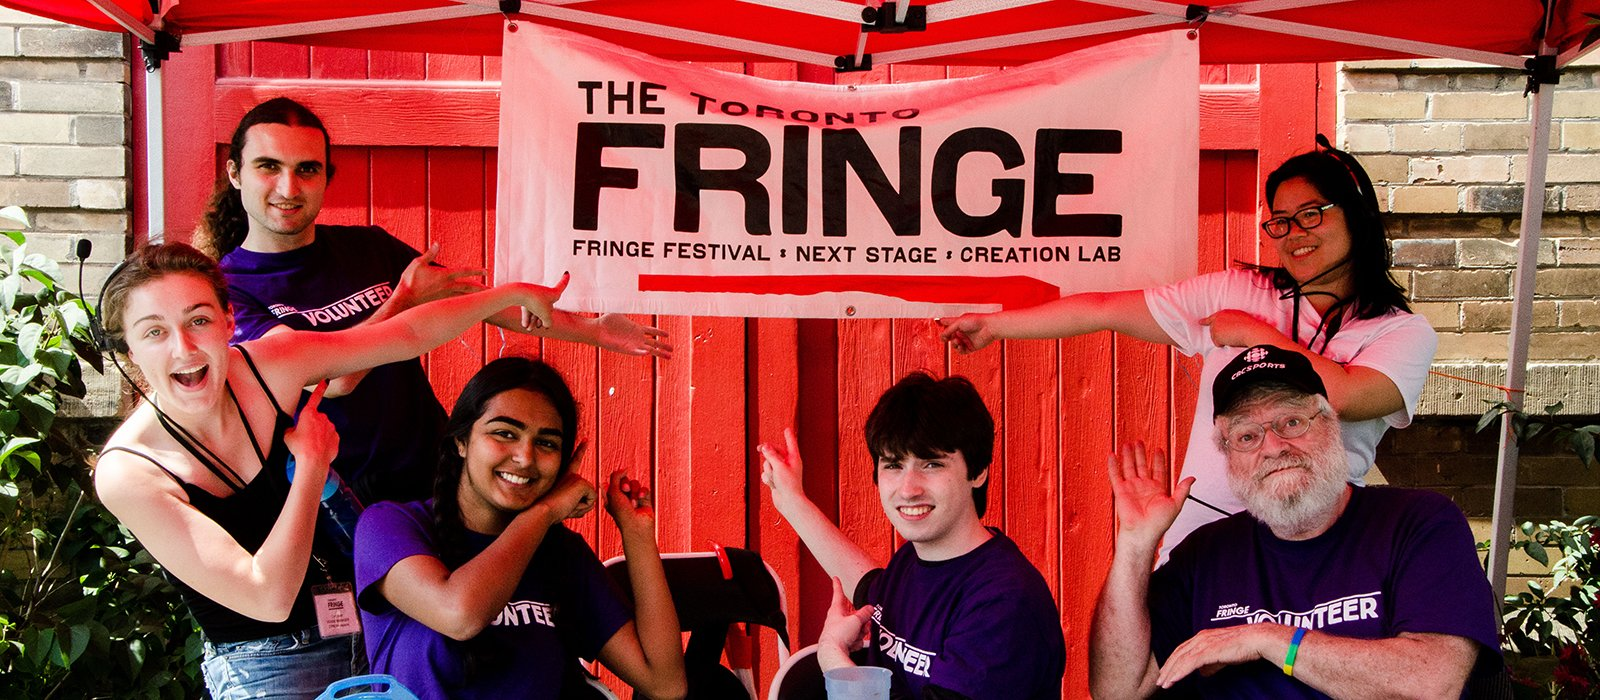 A handful of Fringe Staff and Volunteers hang out and point to the Fringe banner under a tent